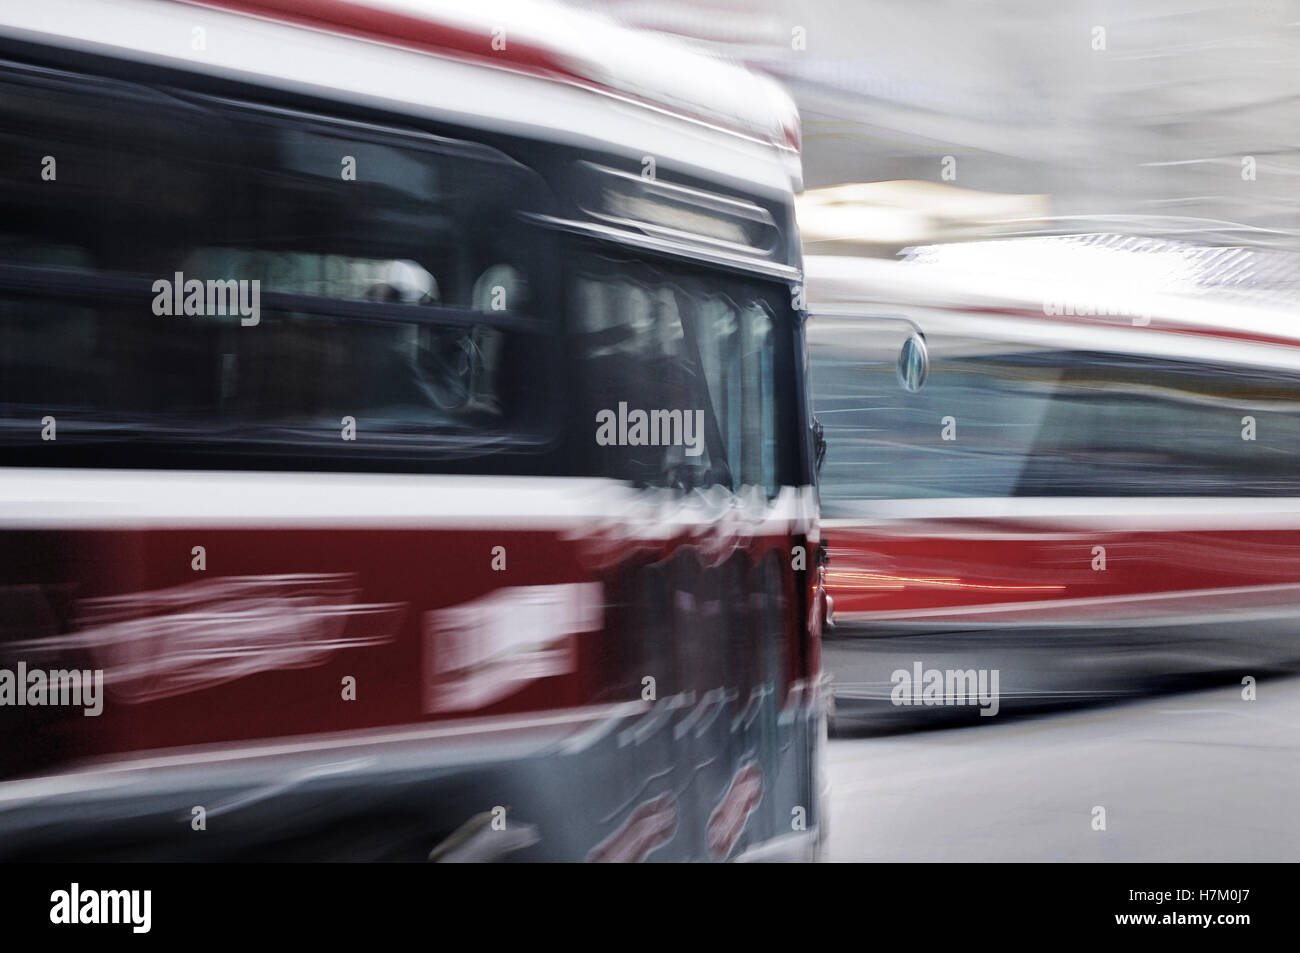 Streetcars on Queen Street, Financial District, Toronto, Canada - Stock Image